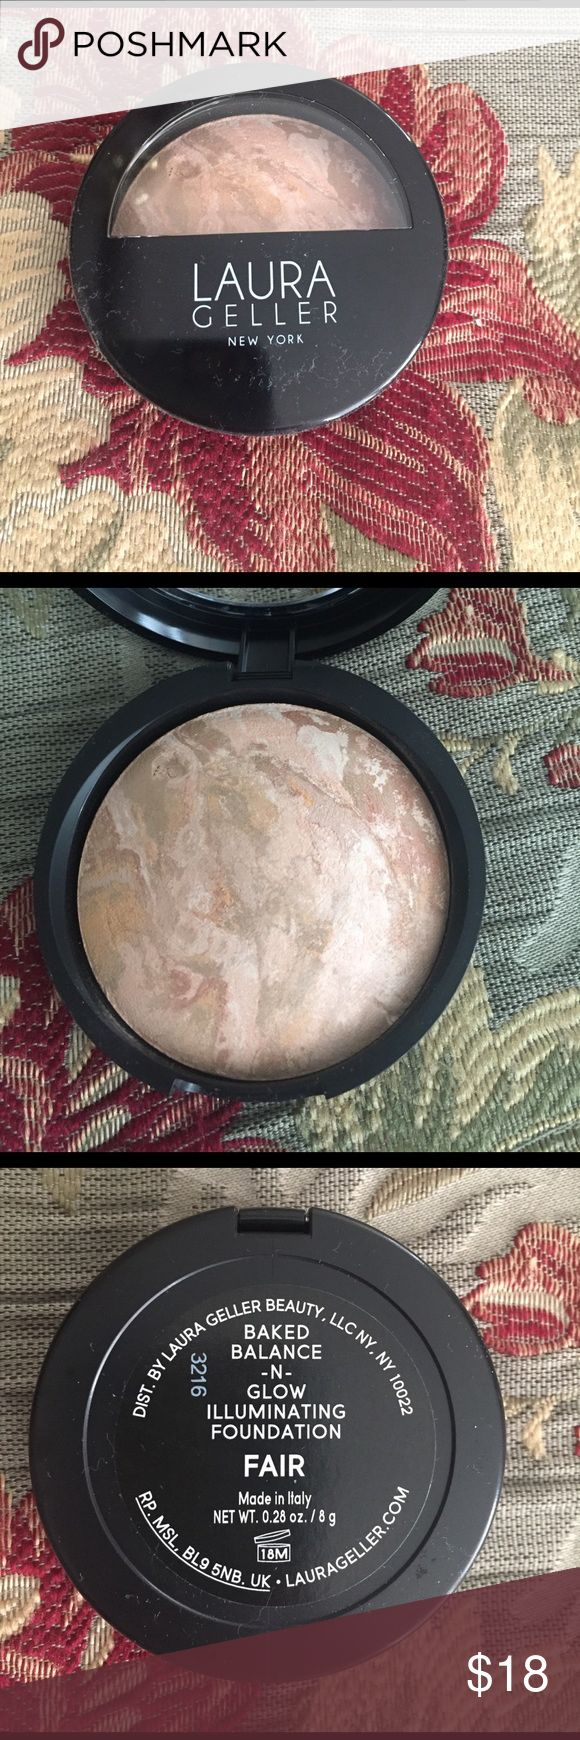 Laura Geller Foundation Brand new unused Baked Balance-n-Glow illuminating foundation in Fair shade. Full size Laura Geller Makeup Face Powder